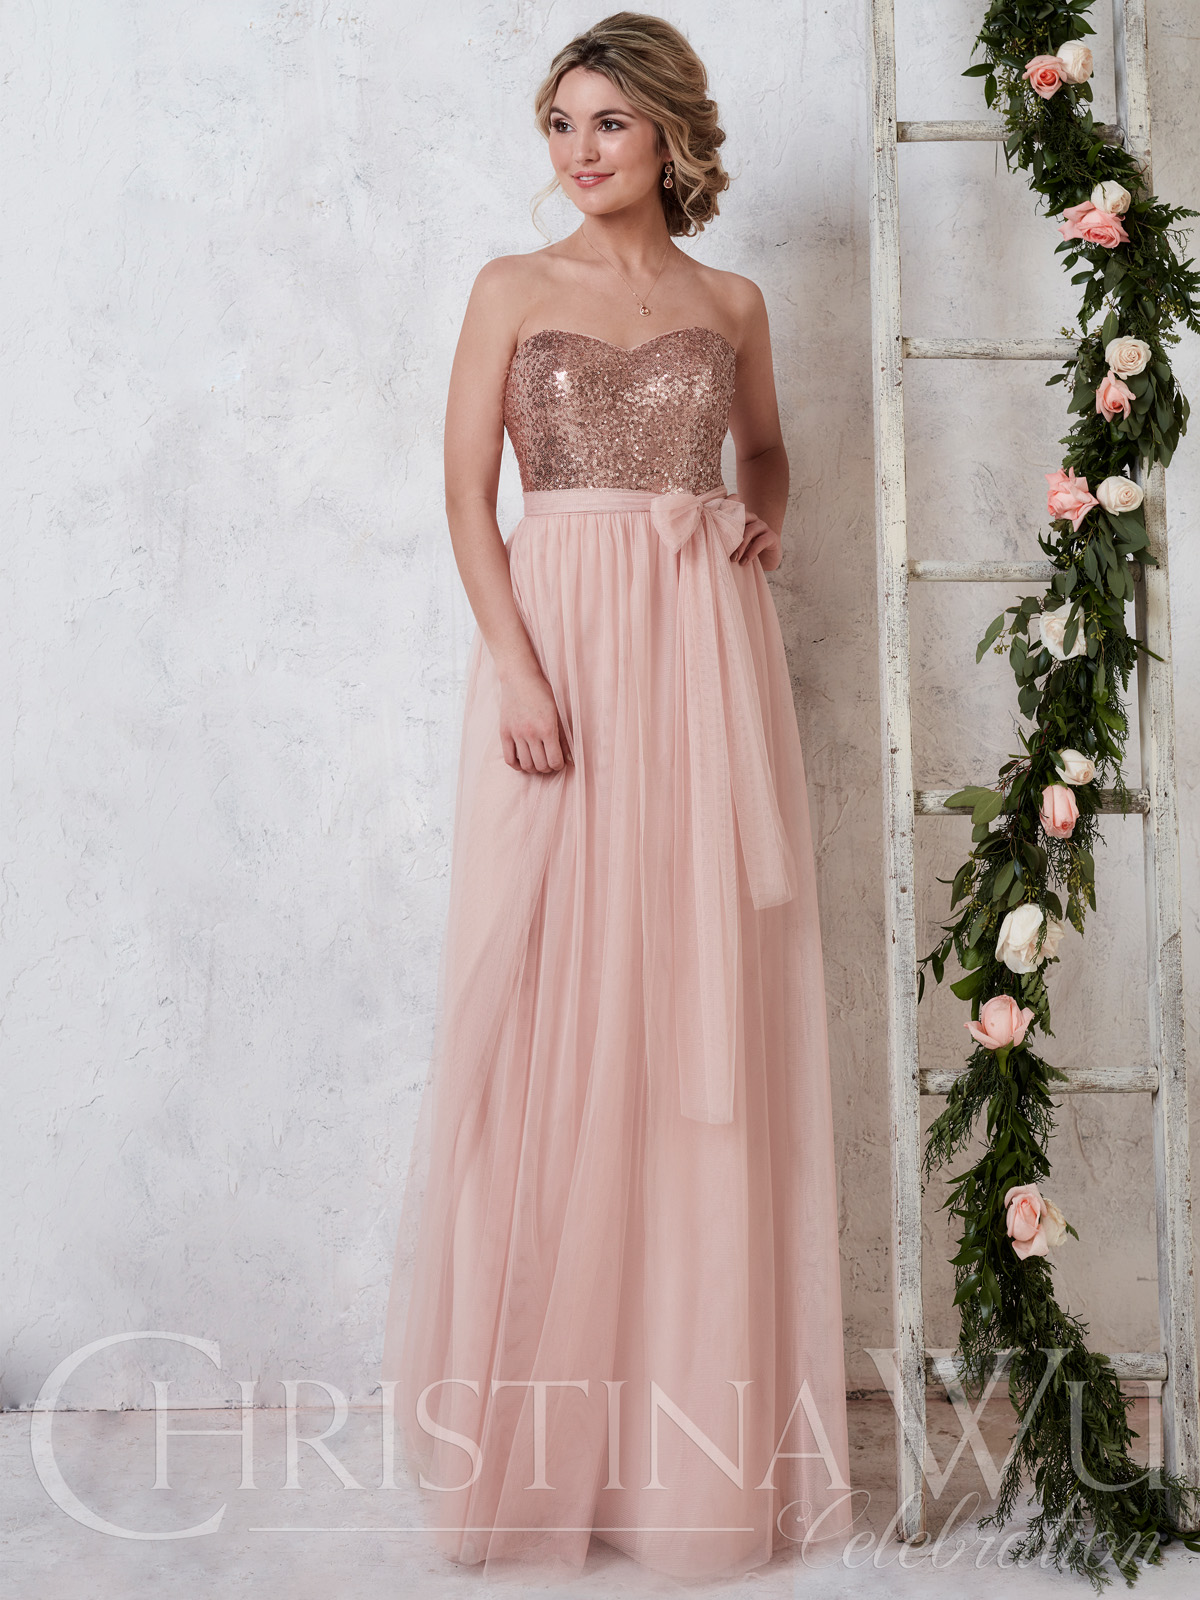 Christina wu 22725 sweetheart tulle a line bridesmaid dress christina wu celebration 22725 sweetheart sequin bridesmaid dress ombrellifo Choice Image